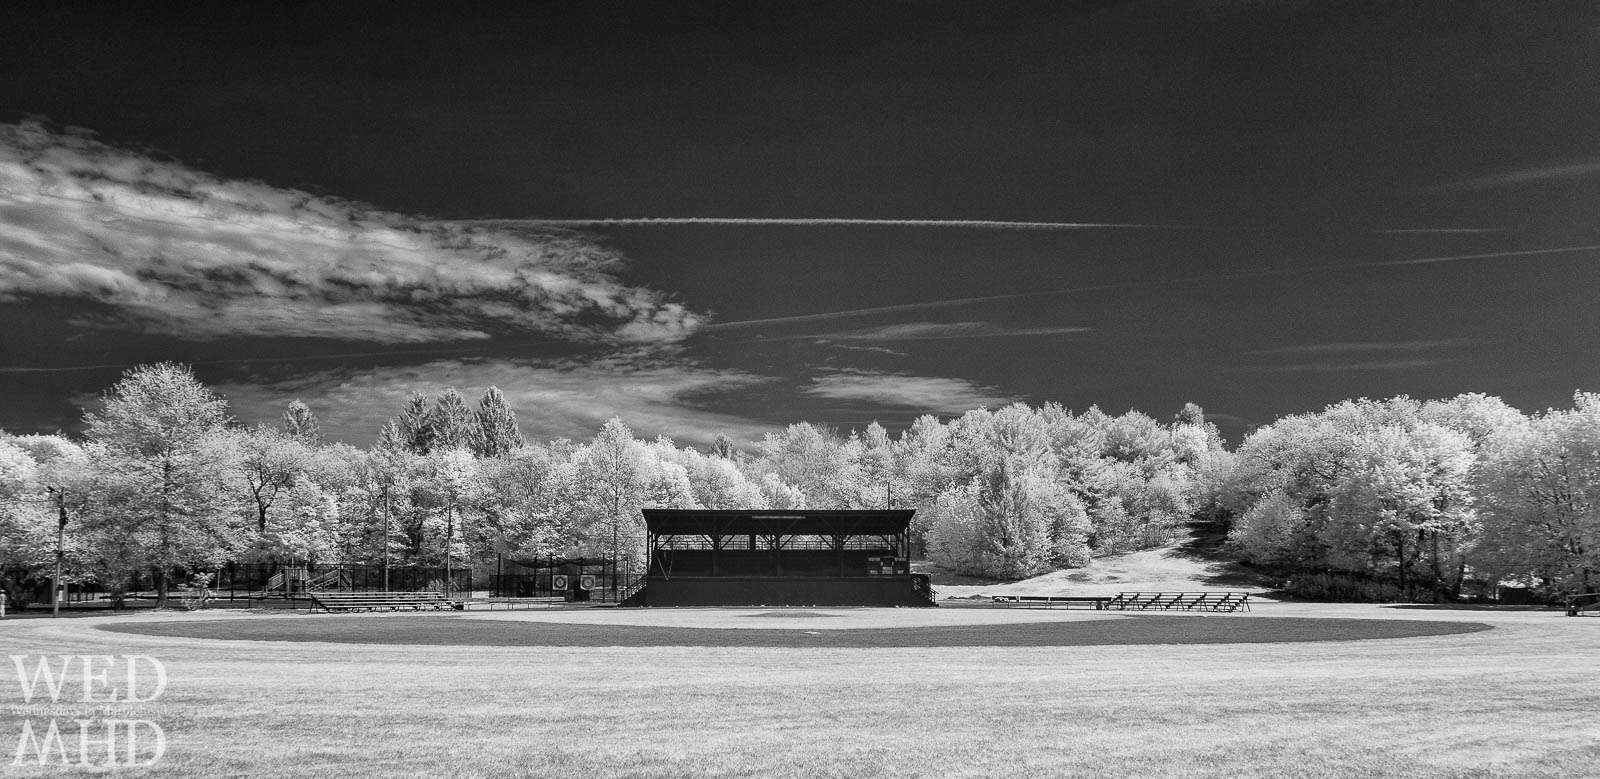 The grandstand at Seaside Park welcomes folks to enjoy a game of baseball in this black and white infrared image